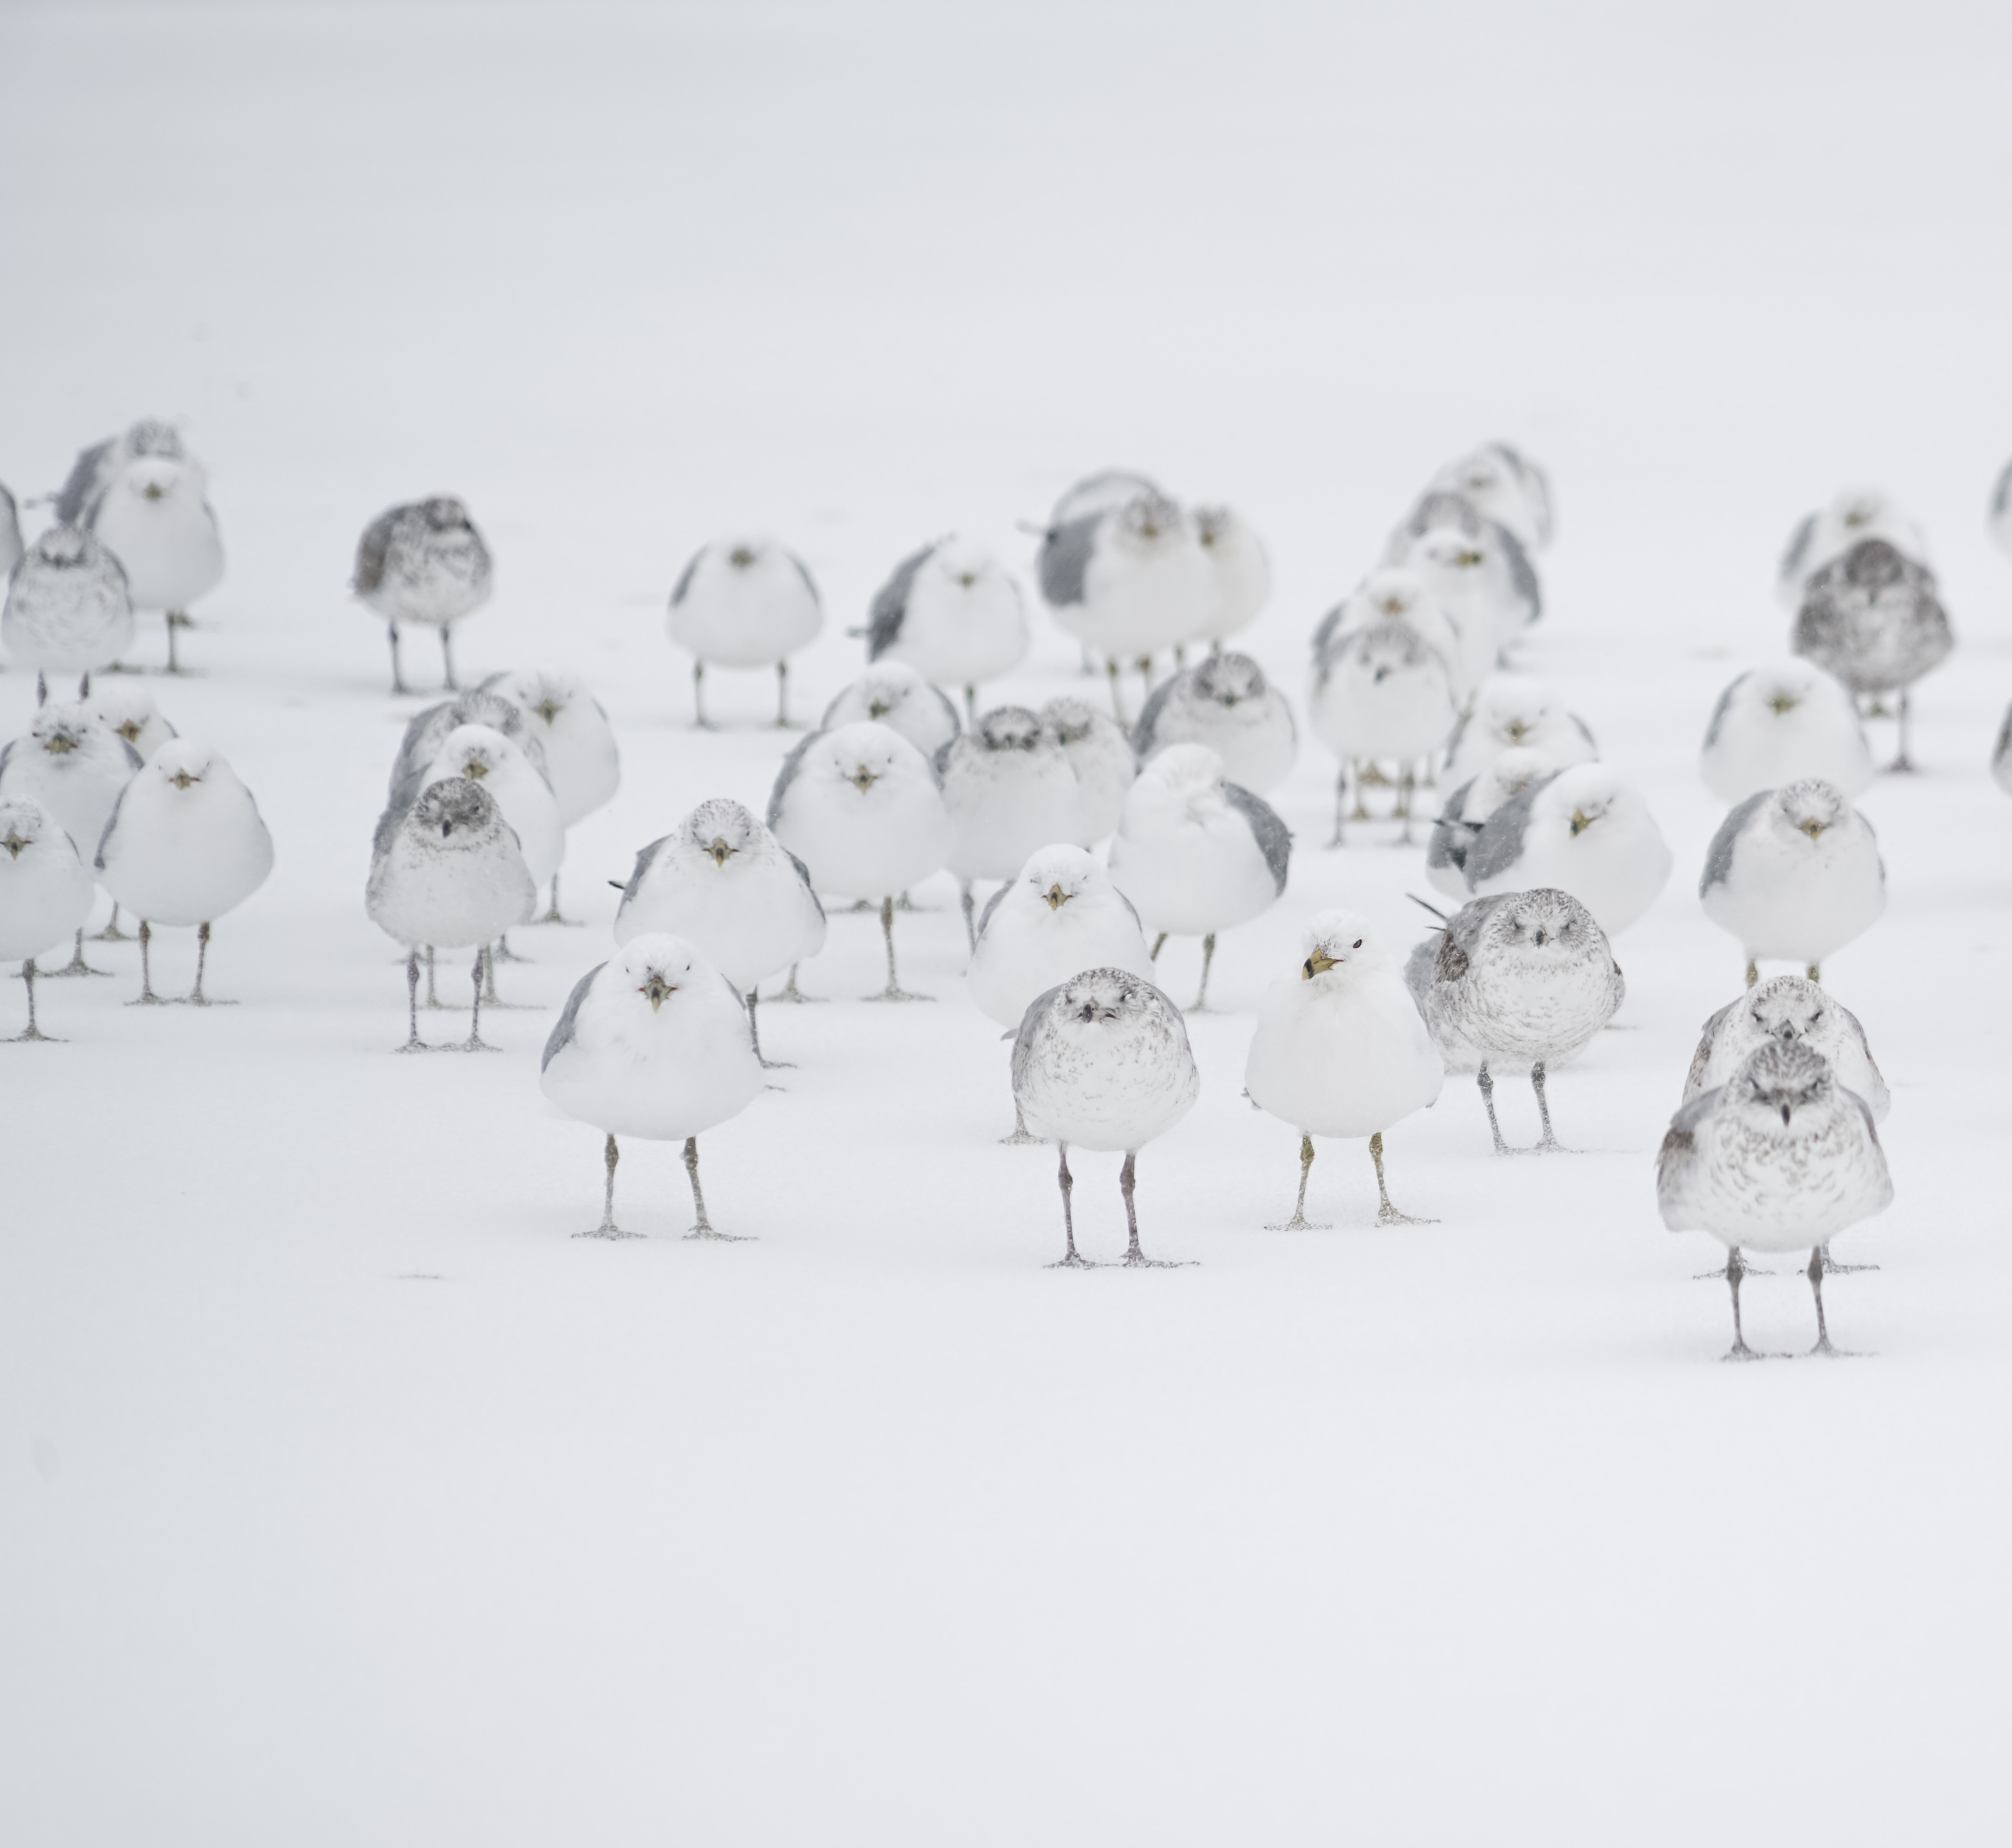 A flock of white birds on snow